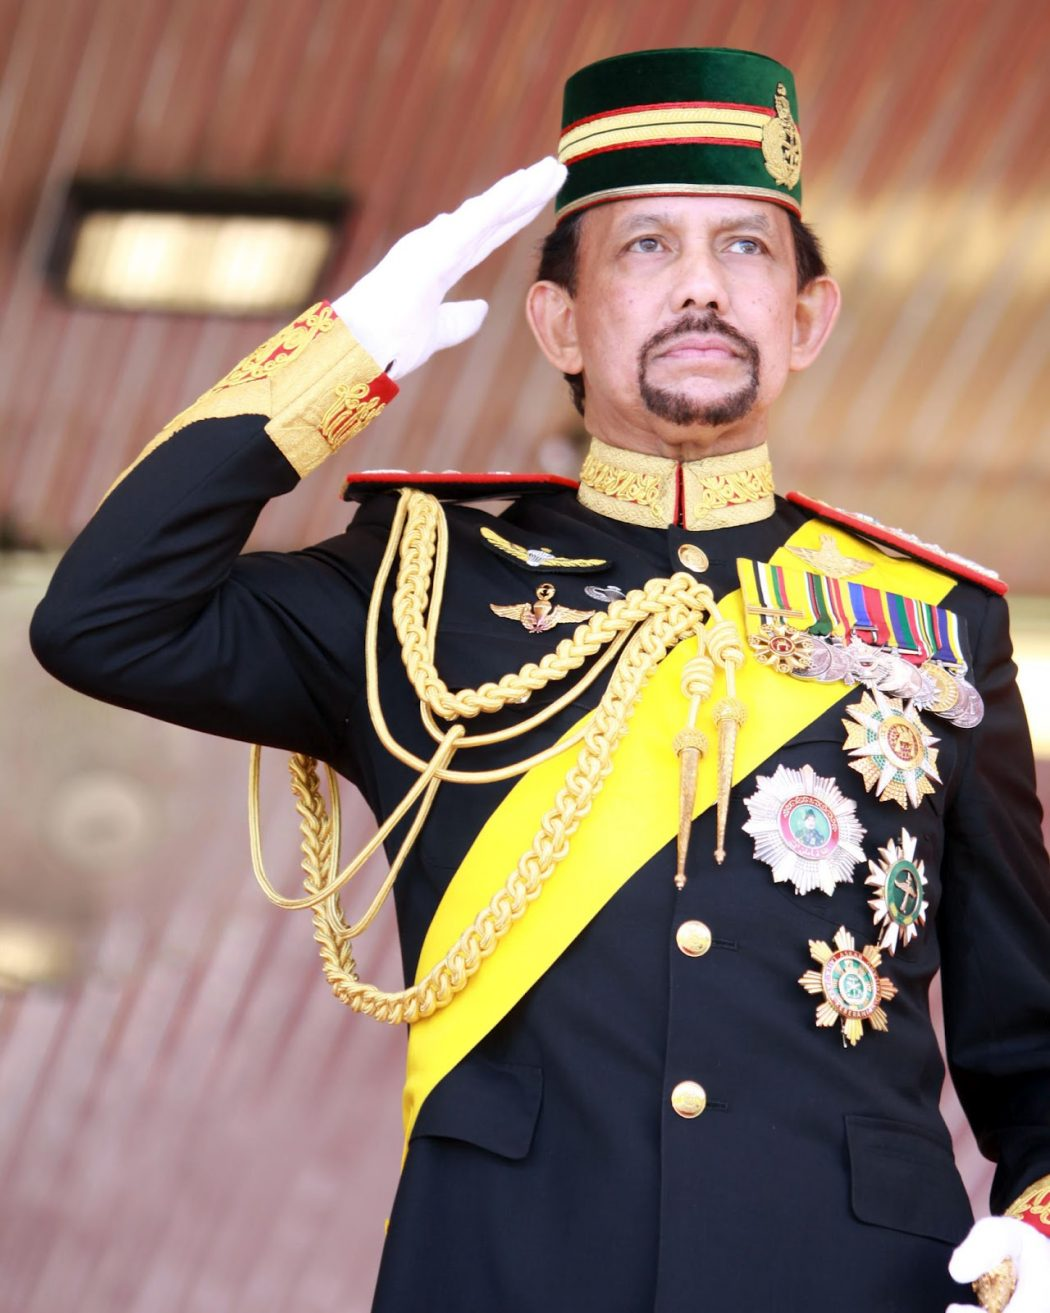 Sultanul_Hassanal_Bolkiah Top 10 Richest Presidents in the World